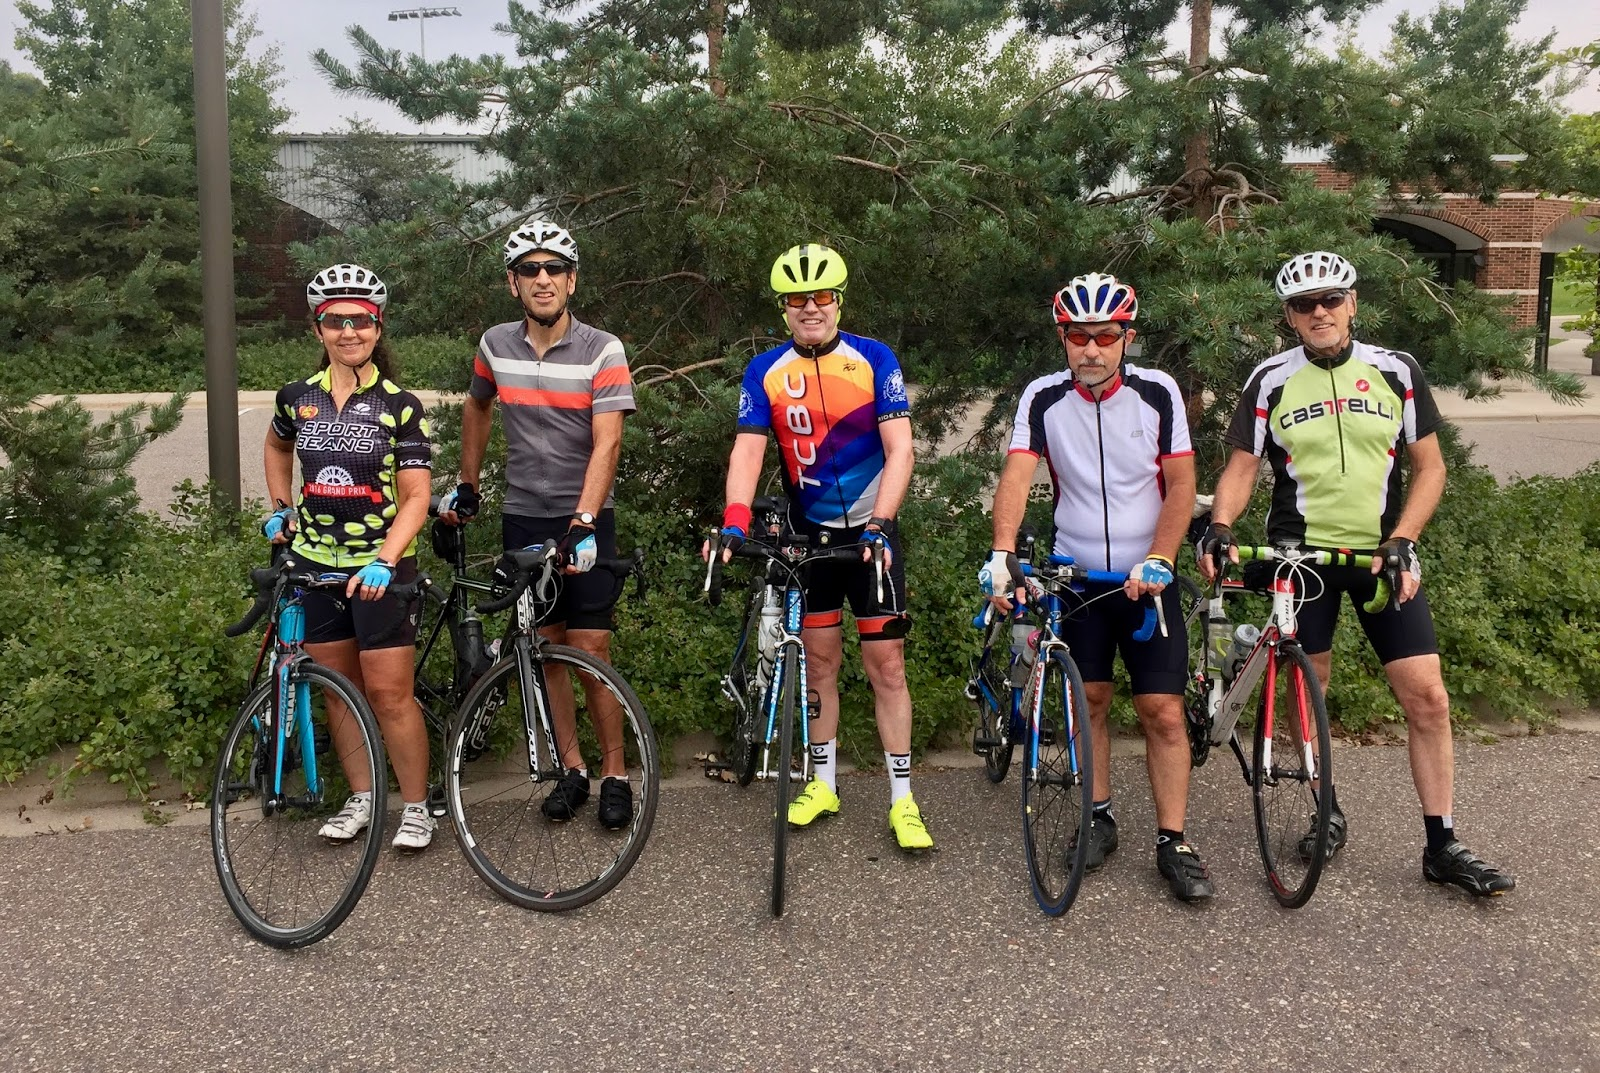 Bicycling Group 69